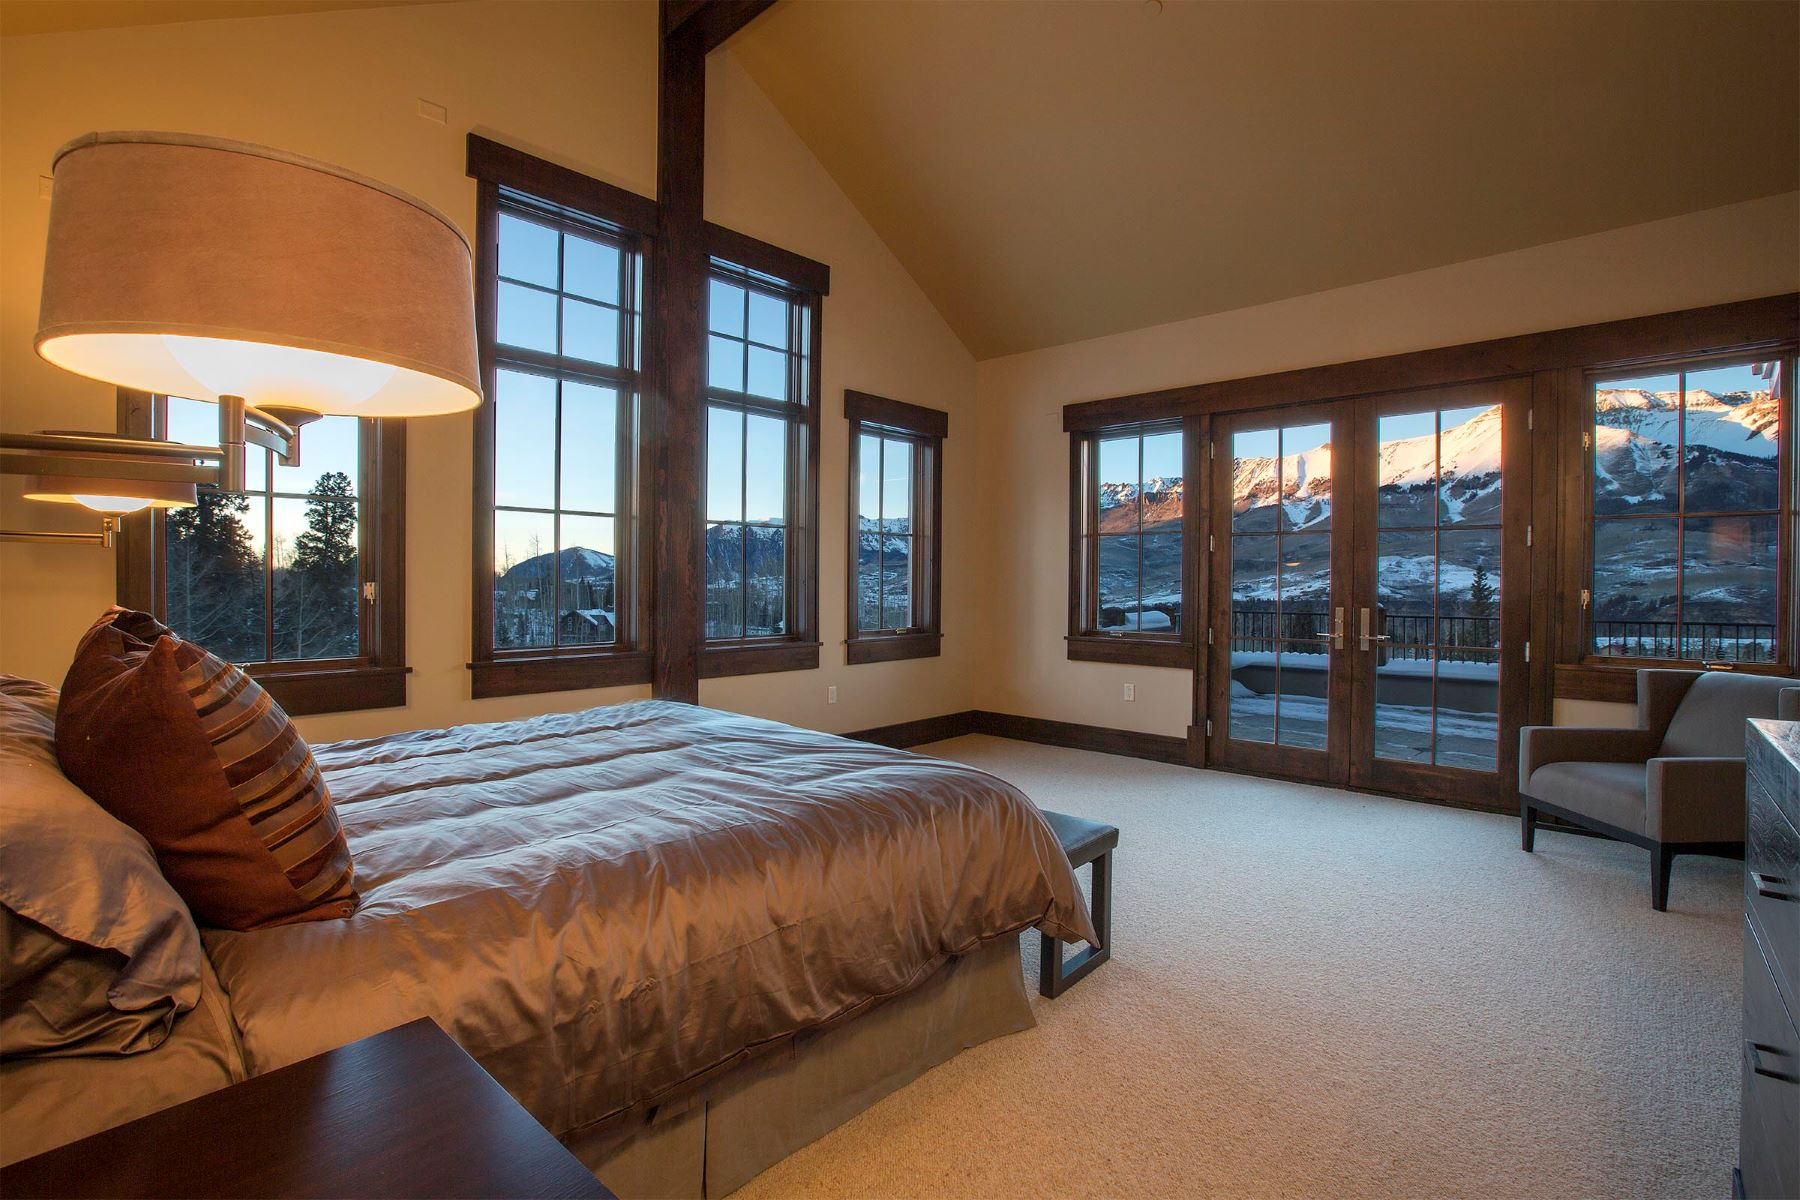 Copropriété pour l Vente à Elkstone 21, Unit 401 500 Mountain Village Blvd, Unit 401 Mountain Village, Telluride, Colorado, 81435 États-Unis